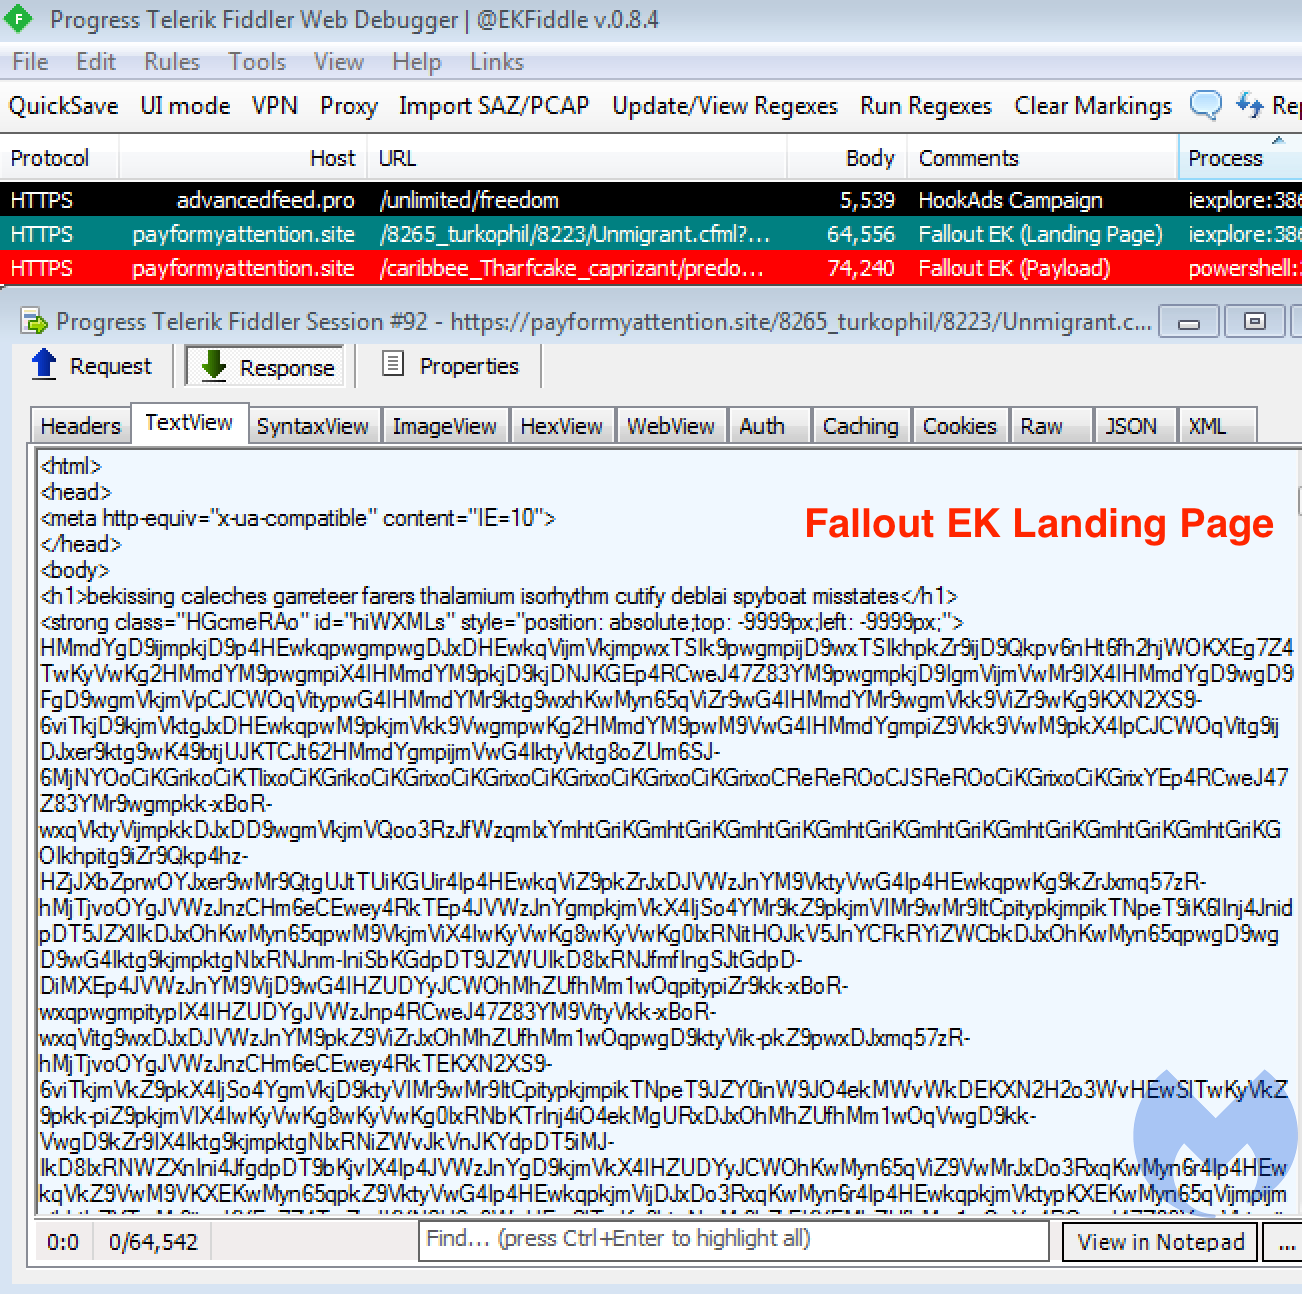 Fallout Exploit Kit now includes exploit for CVE-2018-15982 Flash zero-day